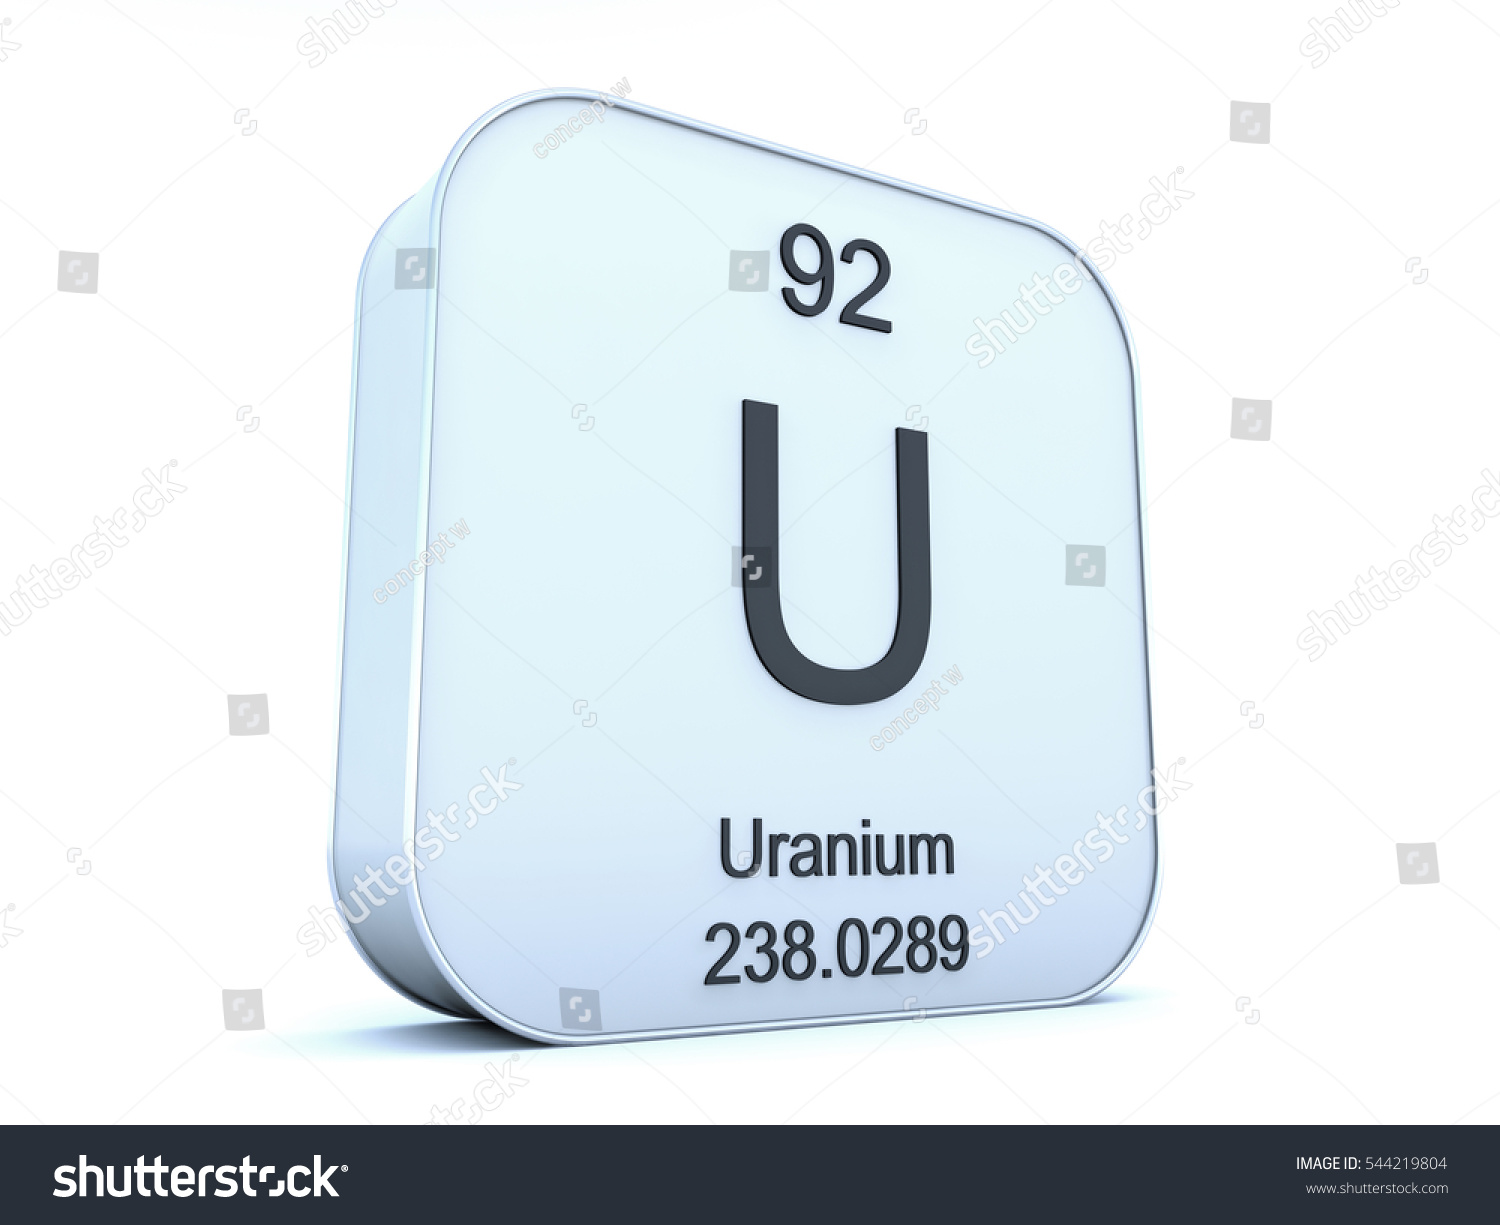 Uranium Element On White Square Icon Stock Illustration 544219804